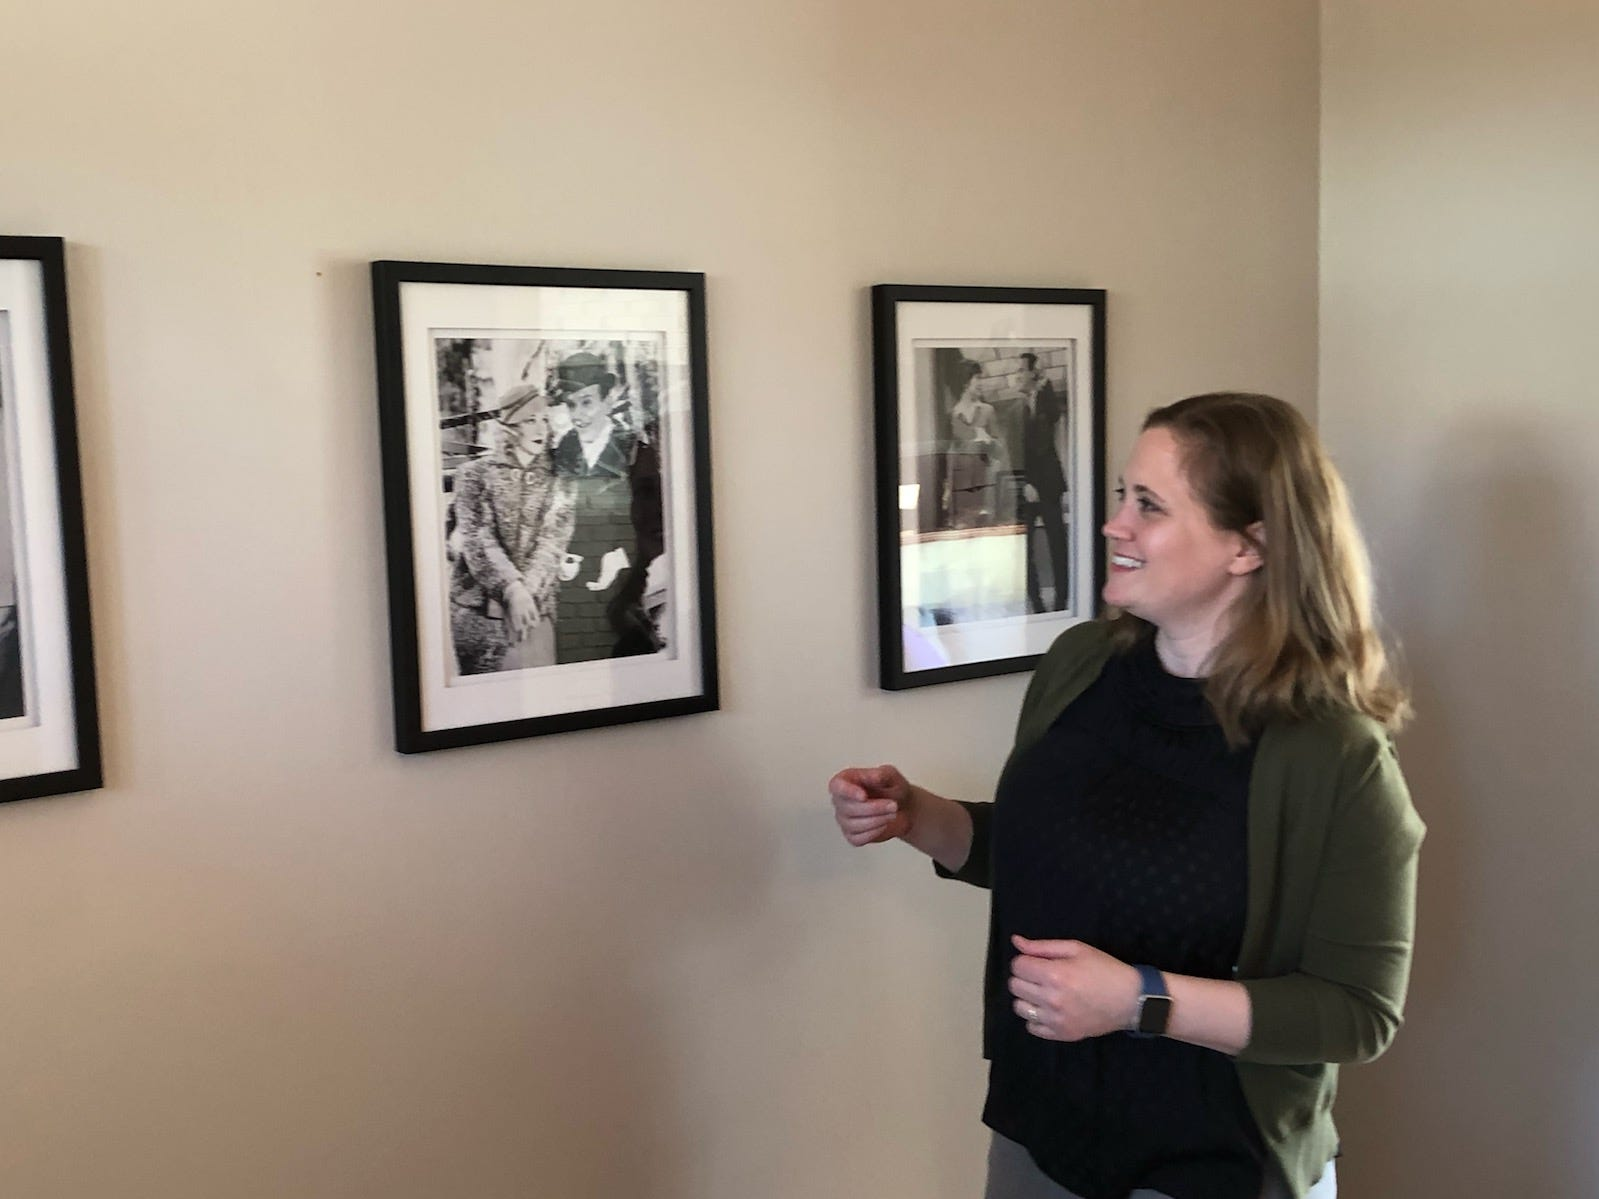 Alex Chapman looks at a photo of Ginger Rogers and Fred Astaire in her Cherry Hill home. She and her husband, Jomathan, have a passion for classic movies.